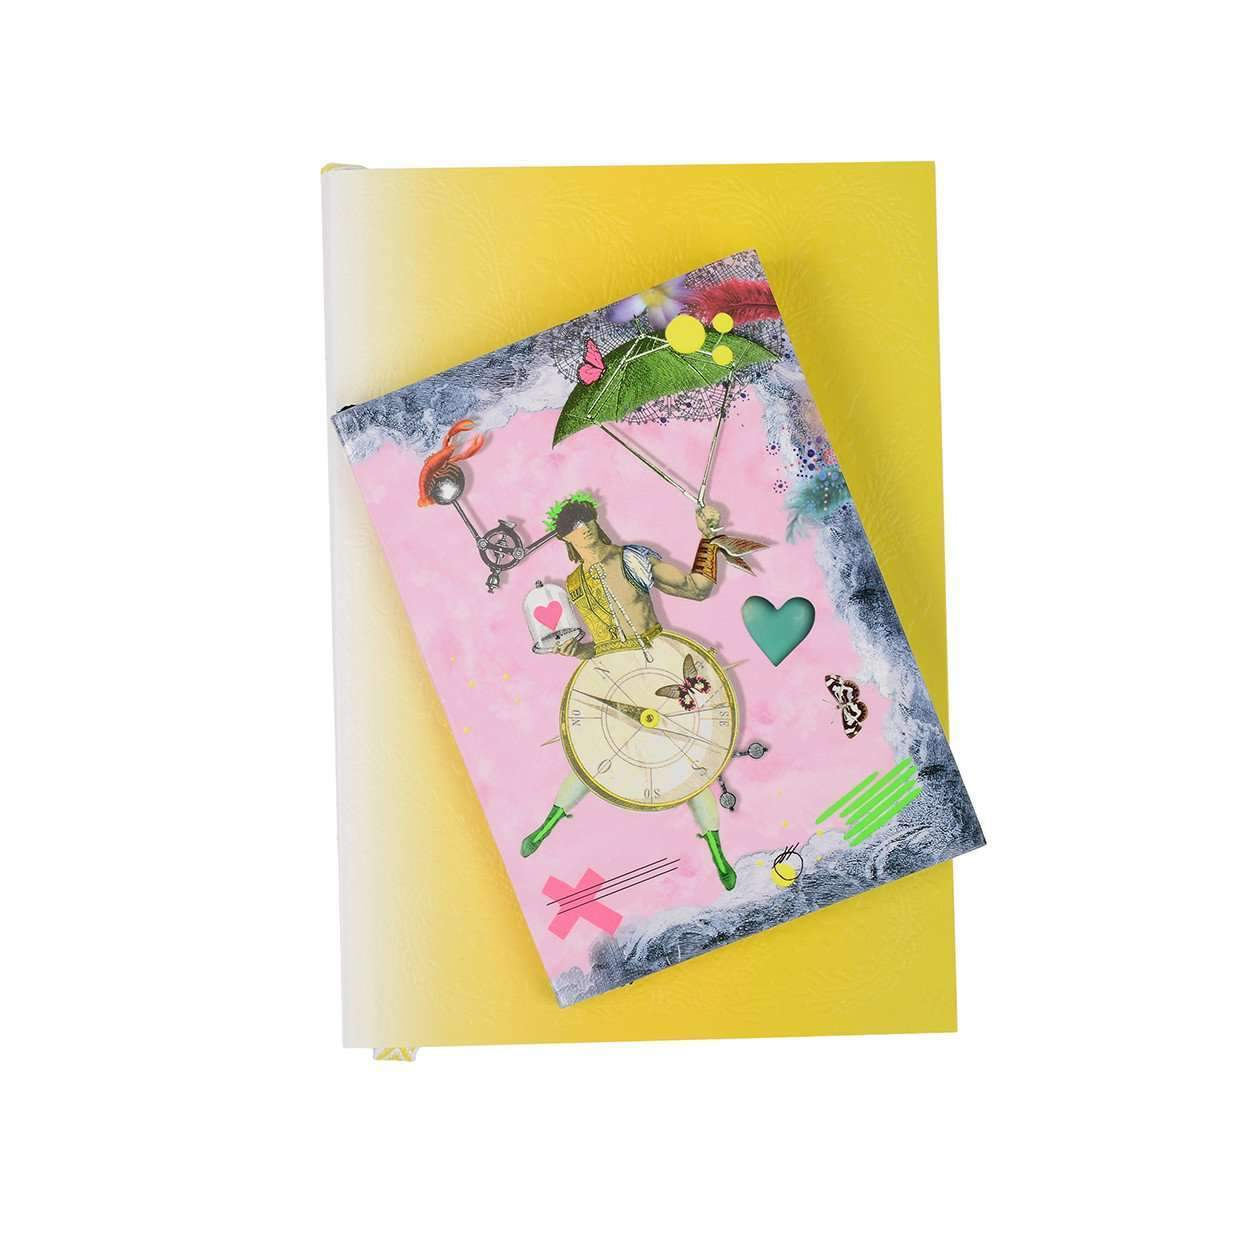 Chronos Softcover Notebook Christian Lacroix Notebooks and Journals Christian Lacroix